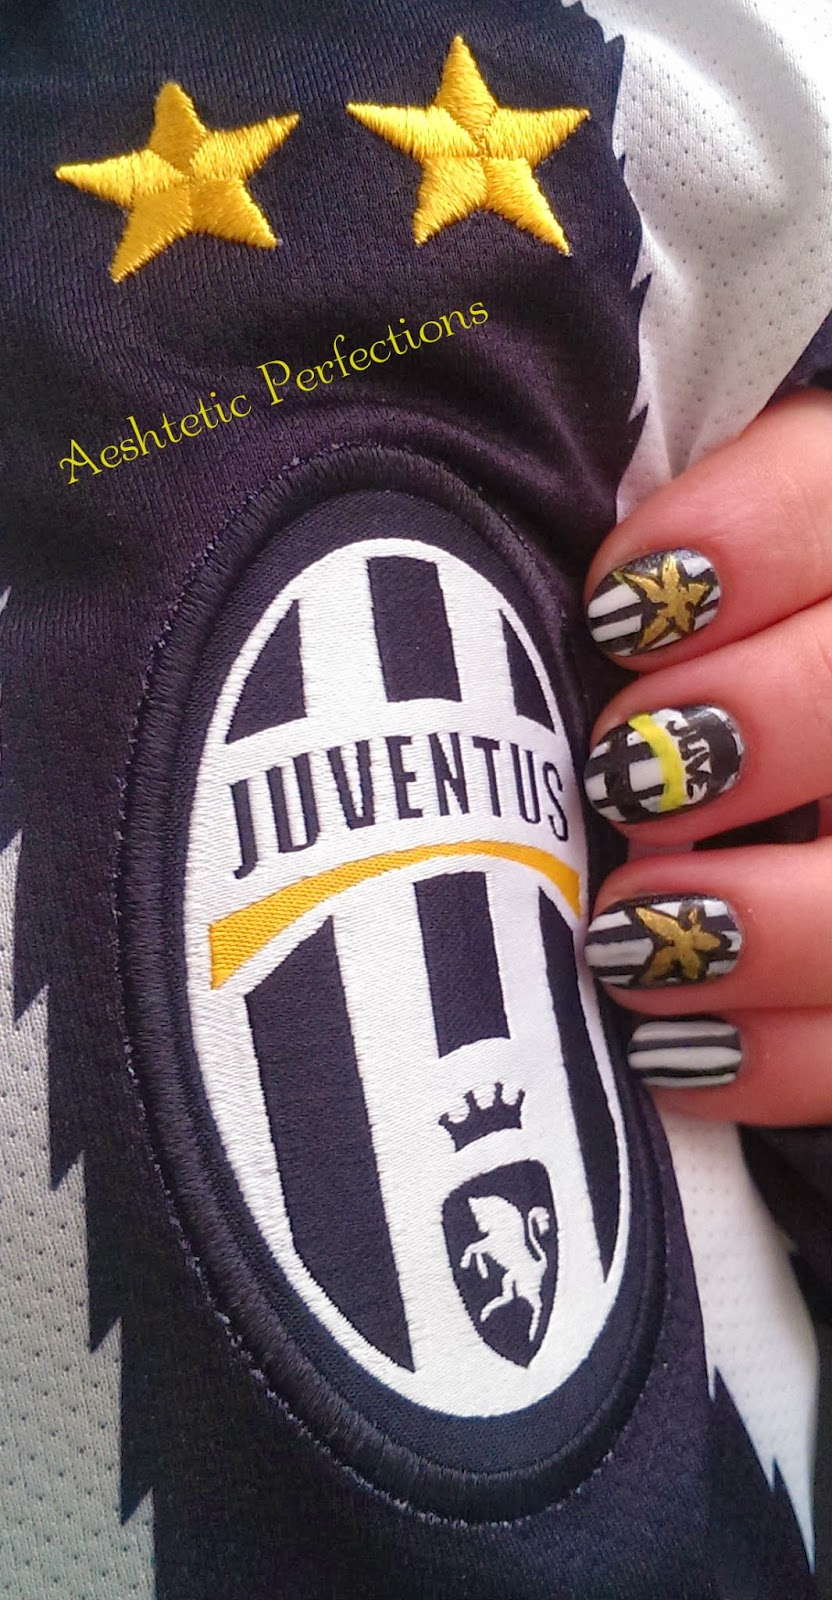 Aesthetic Perfections Fc Juventus Nail Art